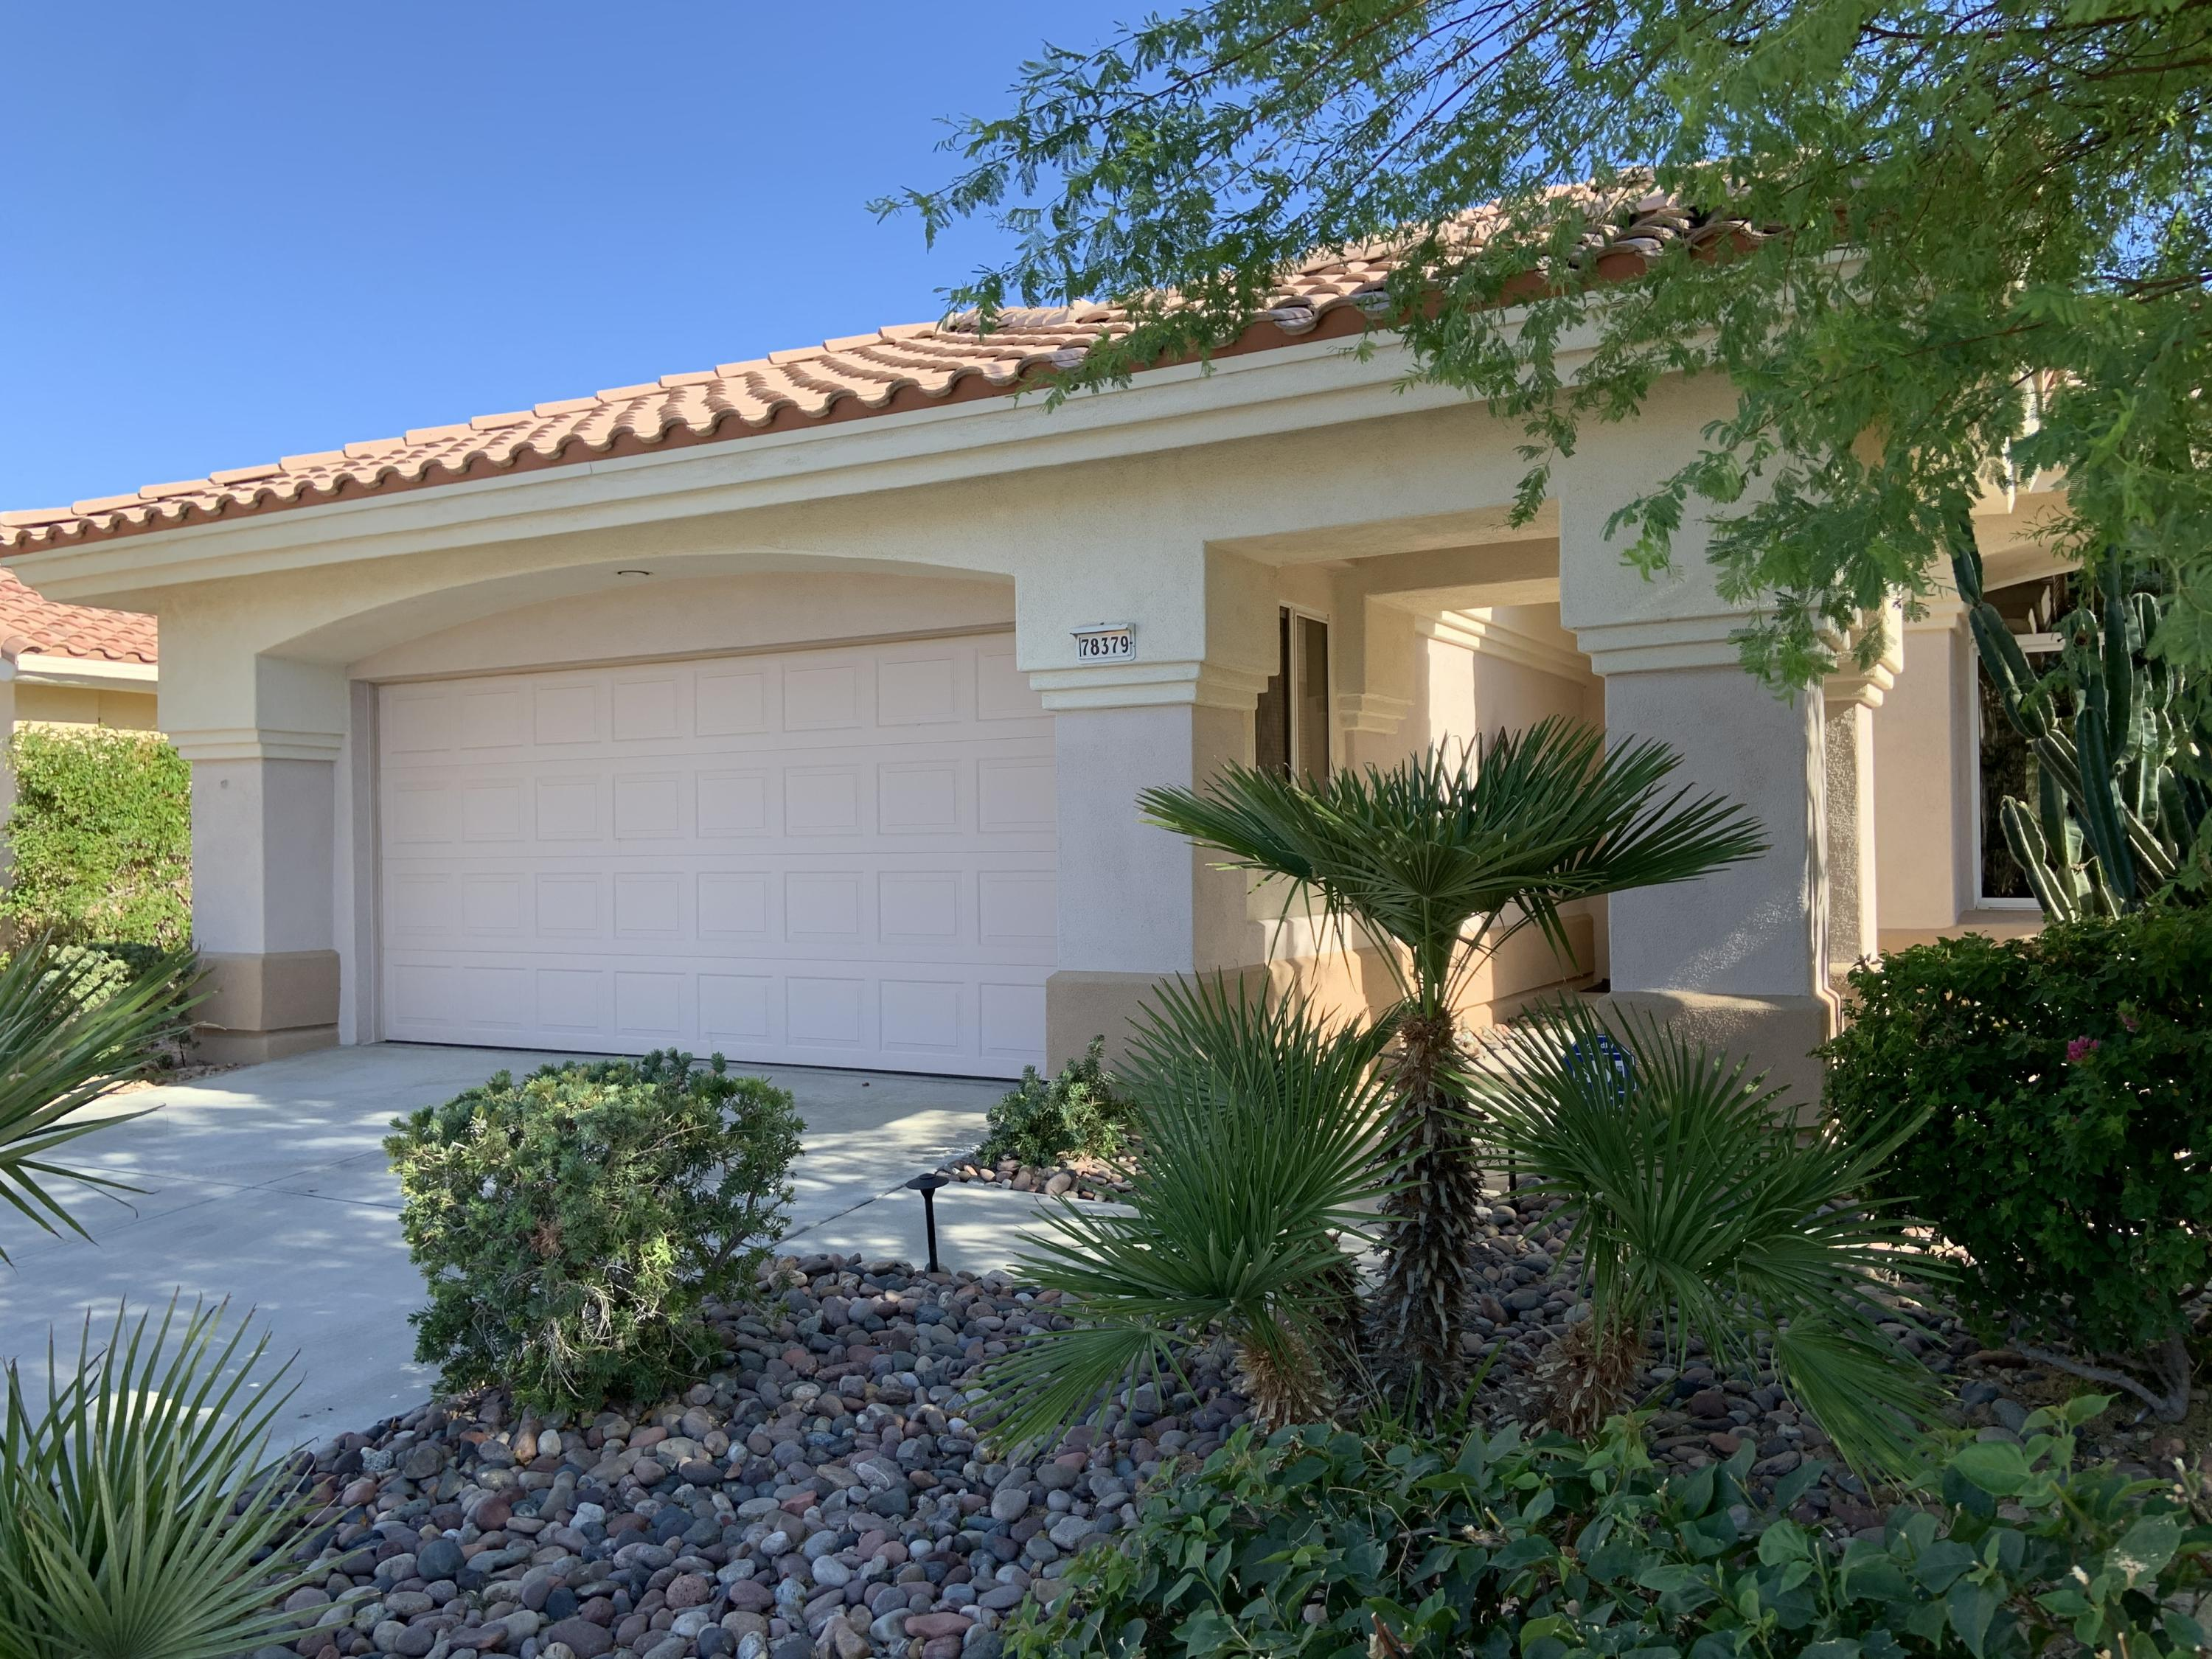 Photo of 78379 Moongold Road, Palm Desert, CA 92211